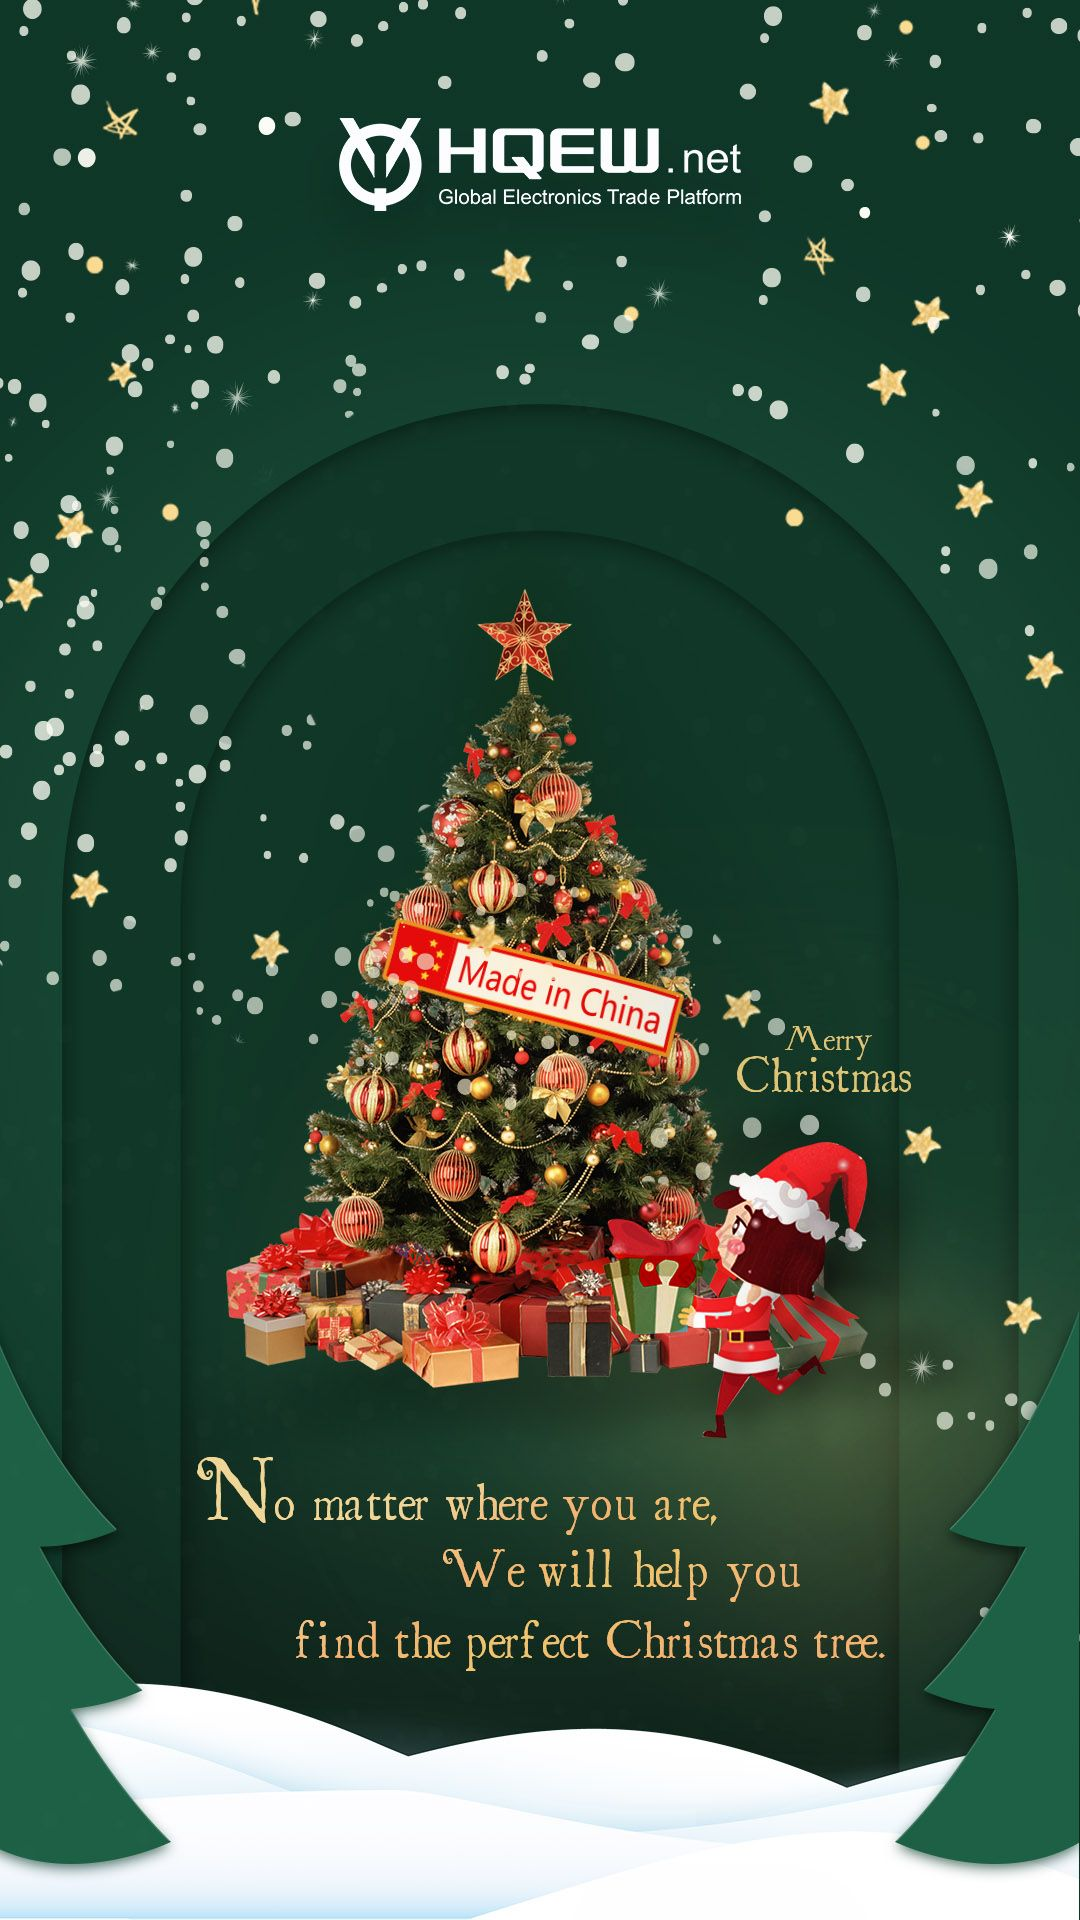 medium resolution of dear merry christmas from hqew net huaqiang north electronic world dec 25 2018